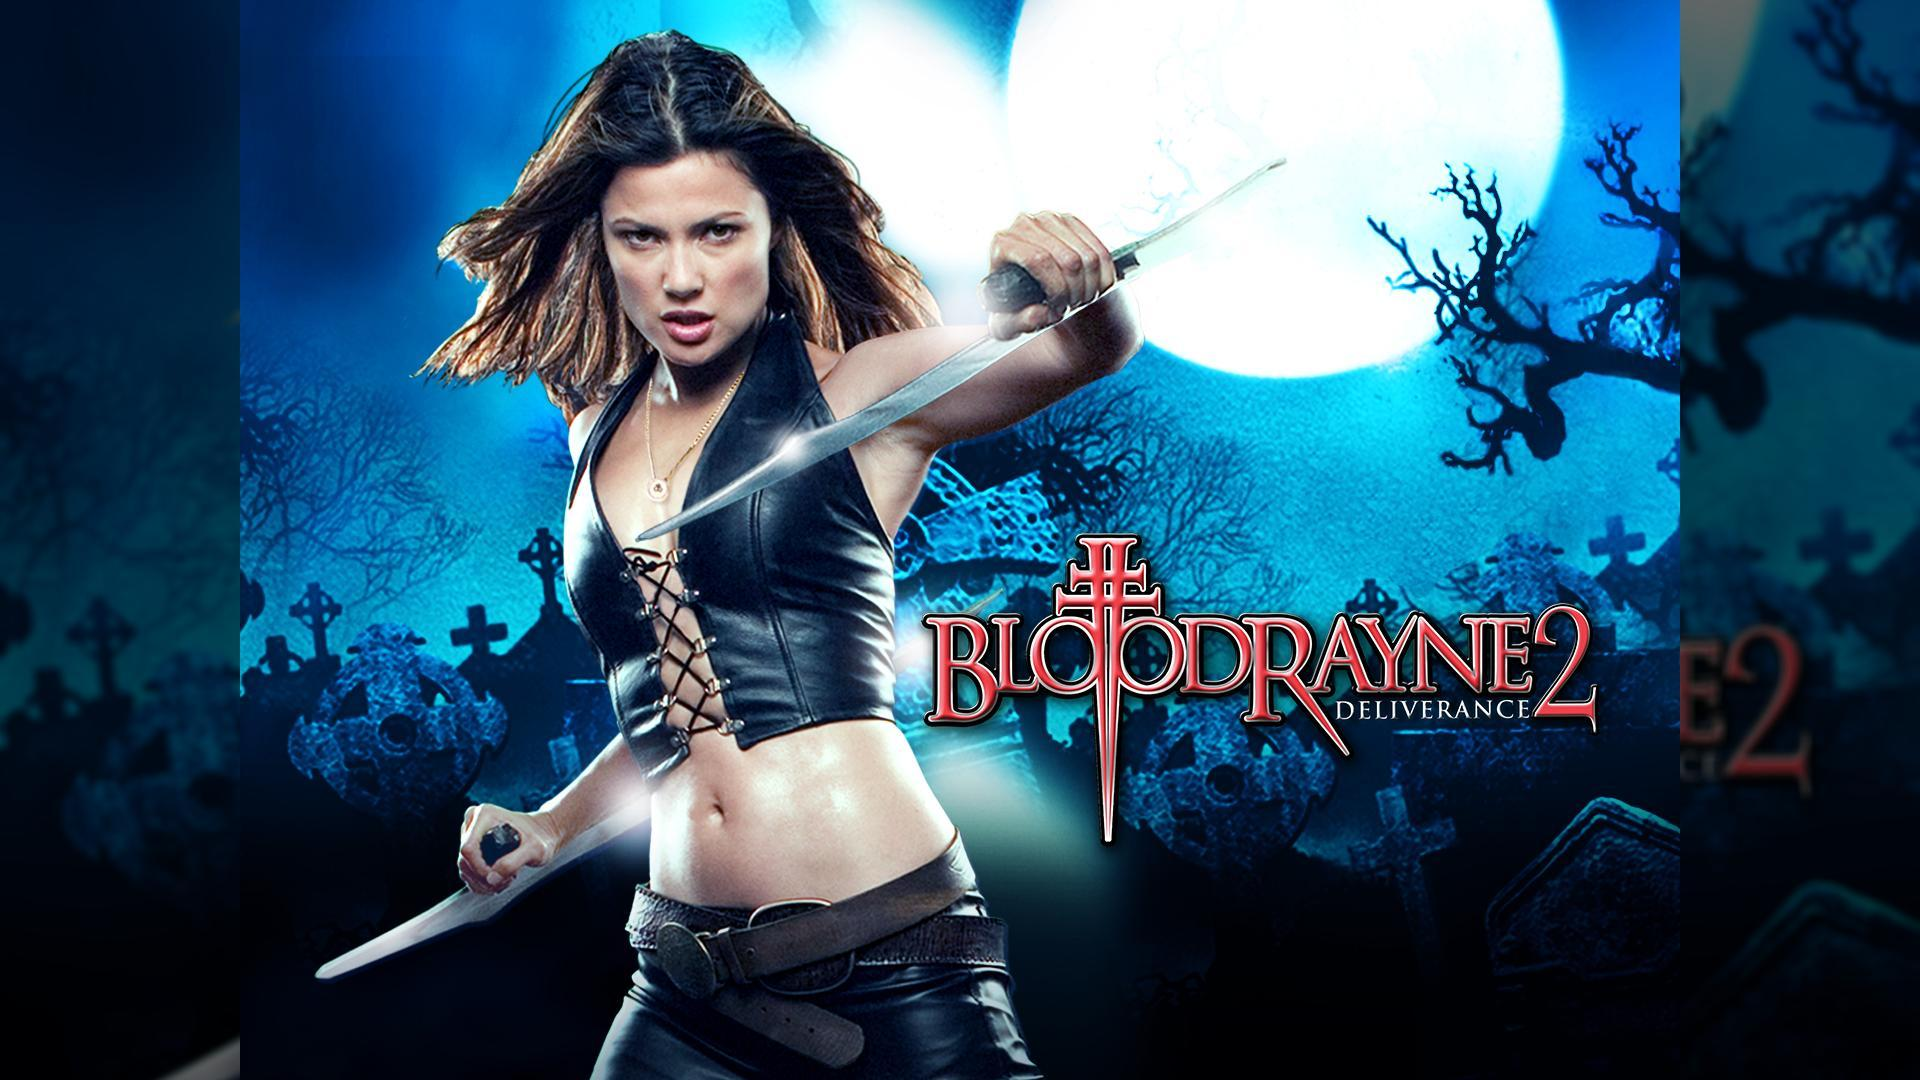 Stream And Watch Bloodrayne 2 Deliverance Online Sling Tv